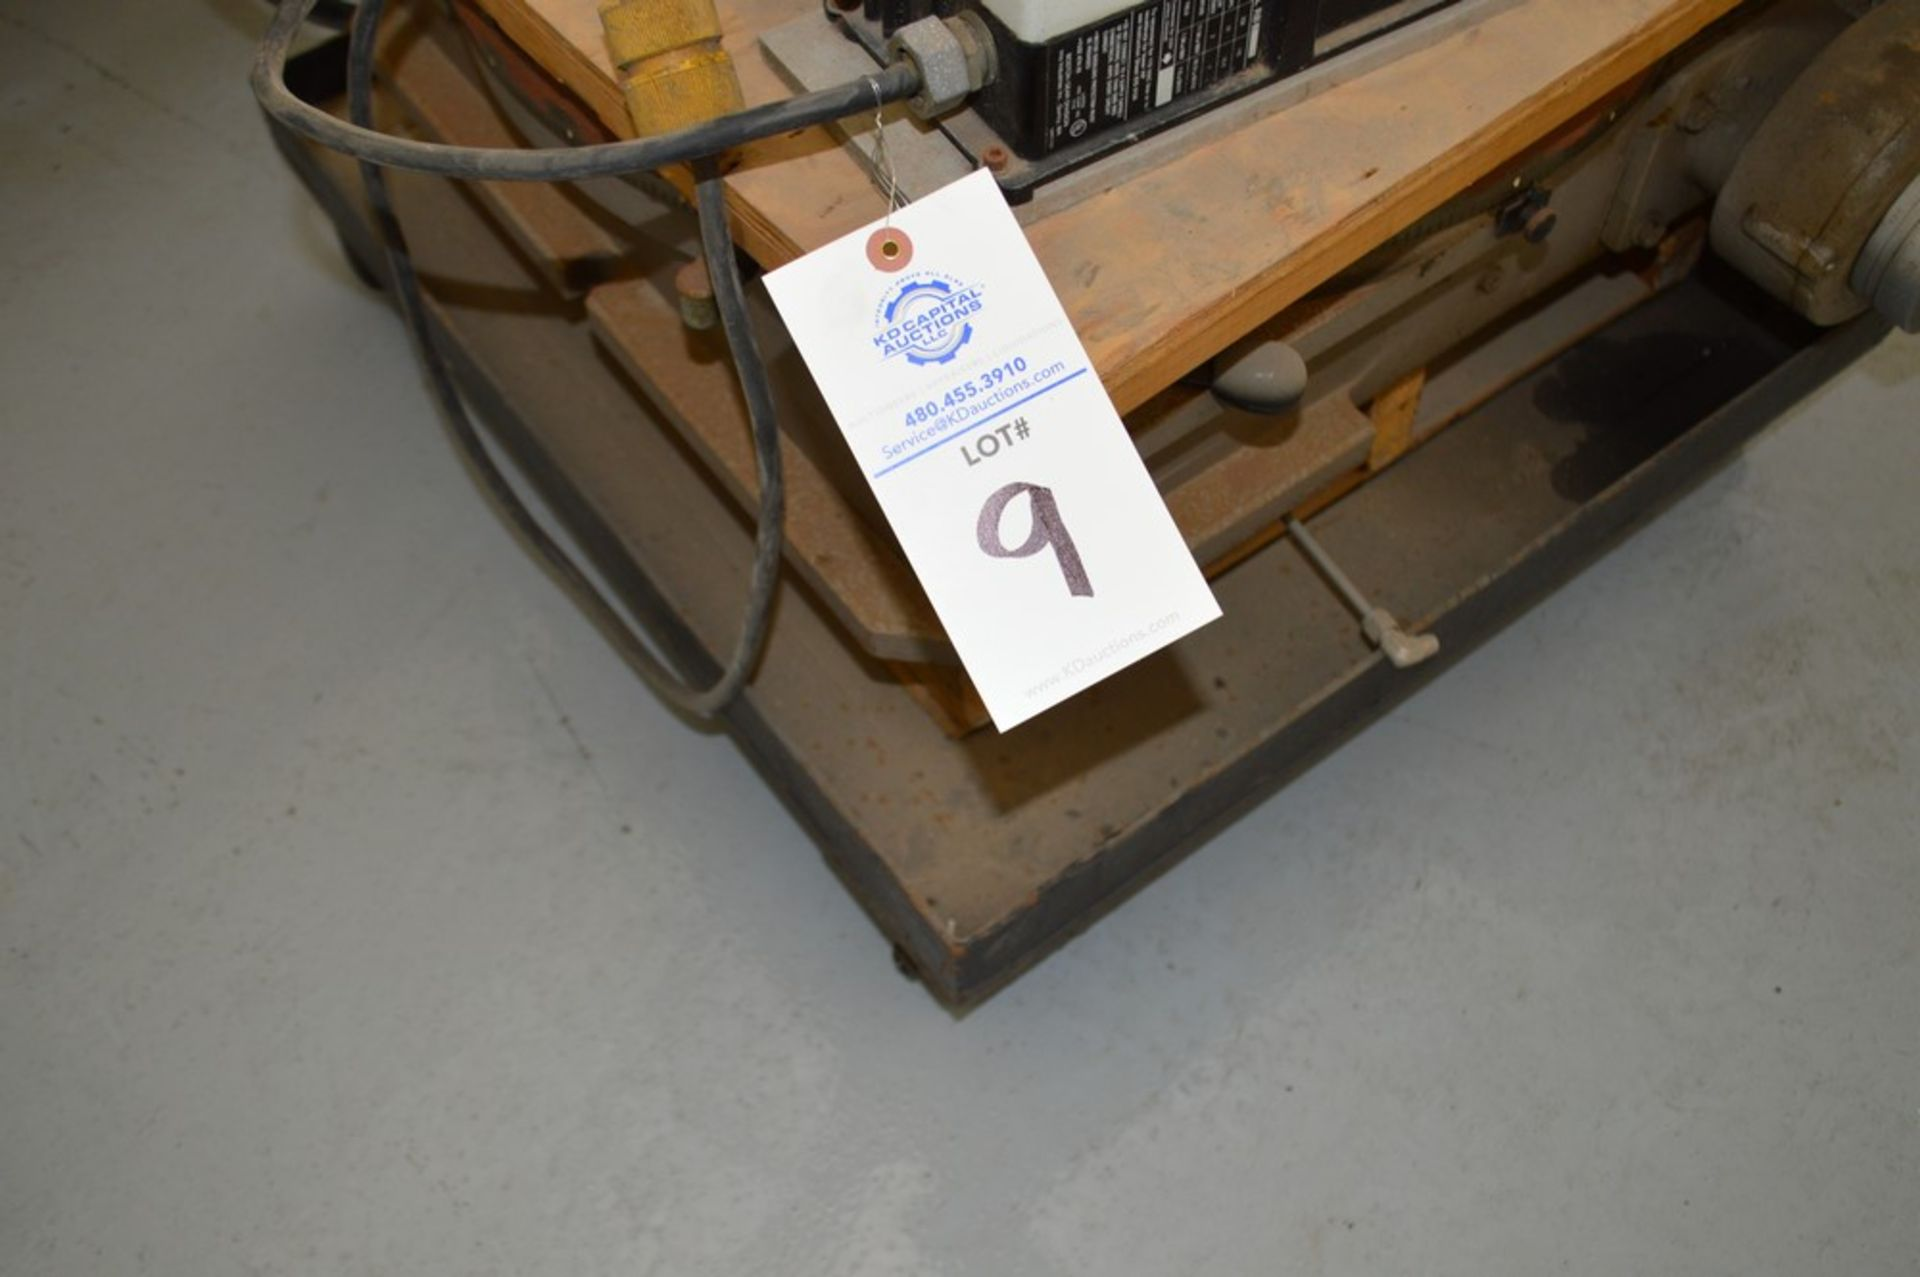 Troyke Model P25 full 4th electric rotary table with low speed gear, 1 reducer and motor speed - Image 6 of 6